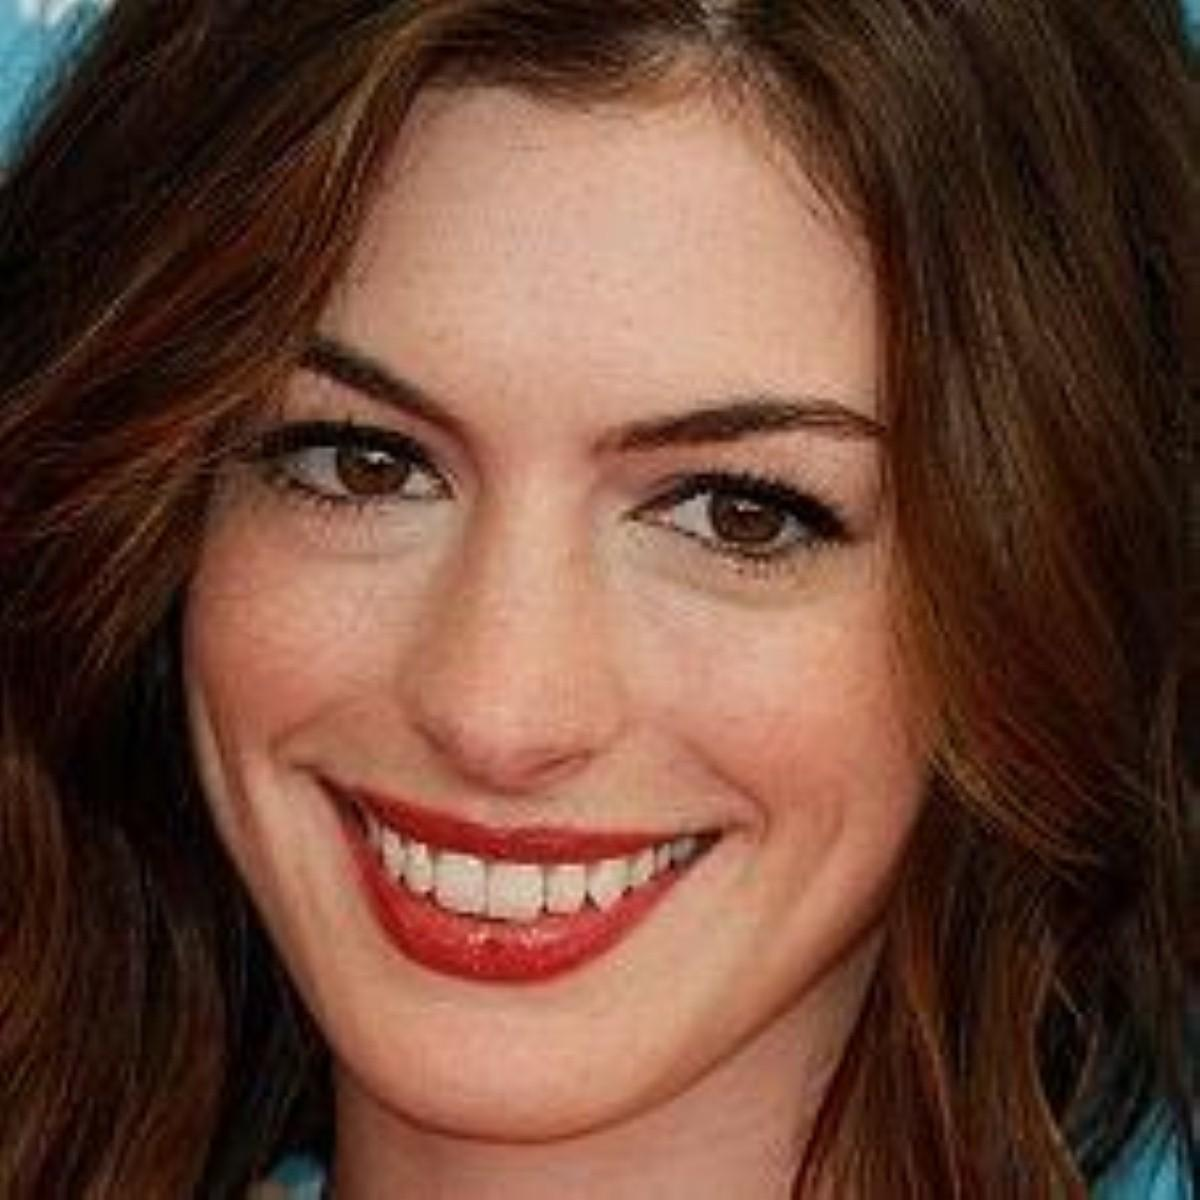 Anne Hathaway 'researched Parkinson's for new role'